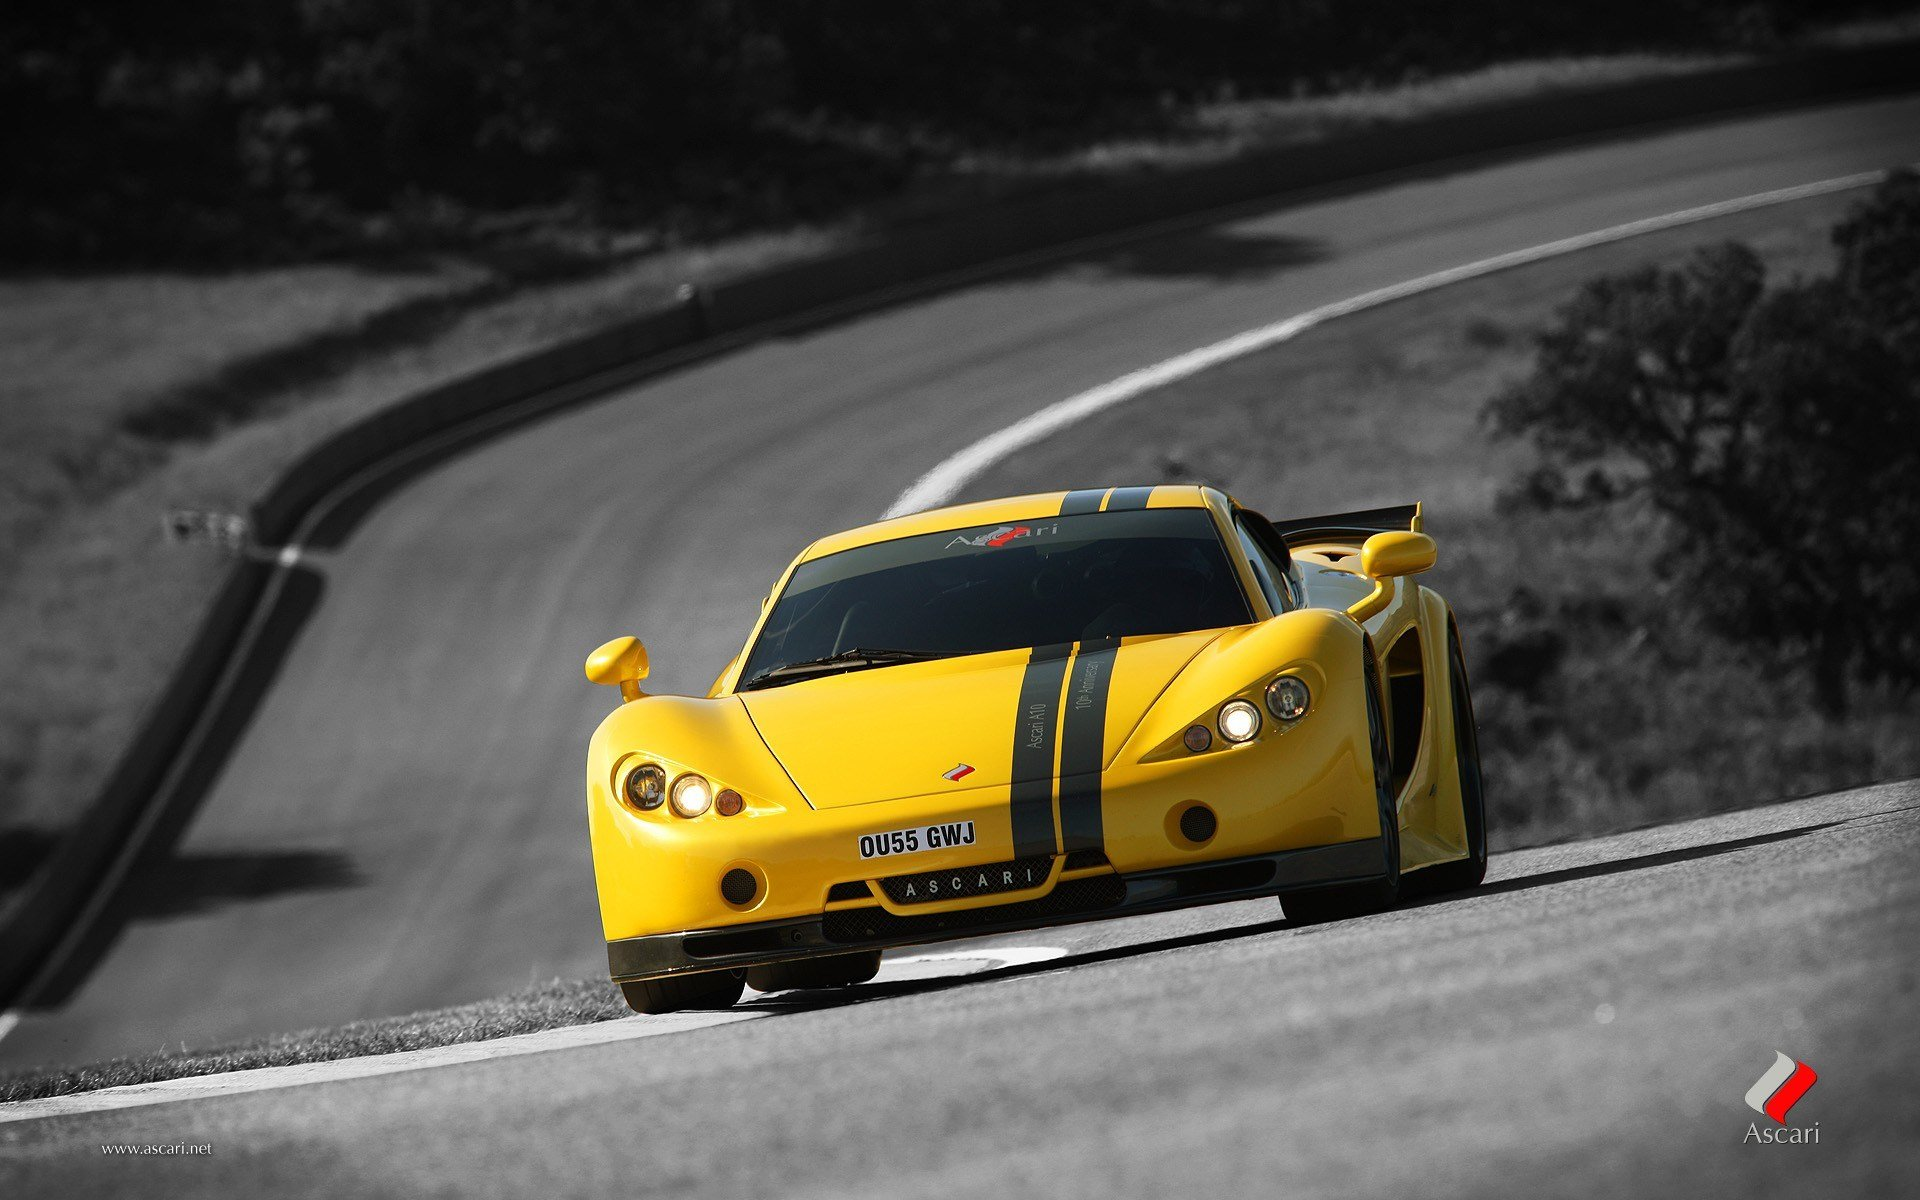 Latest Ascari A10 Hd Wallpaper Background Image 1920X1200 Free Download